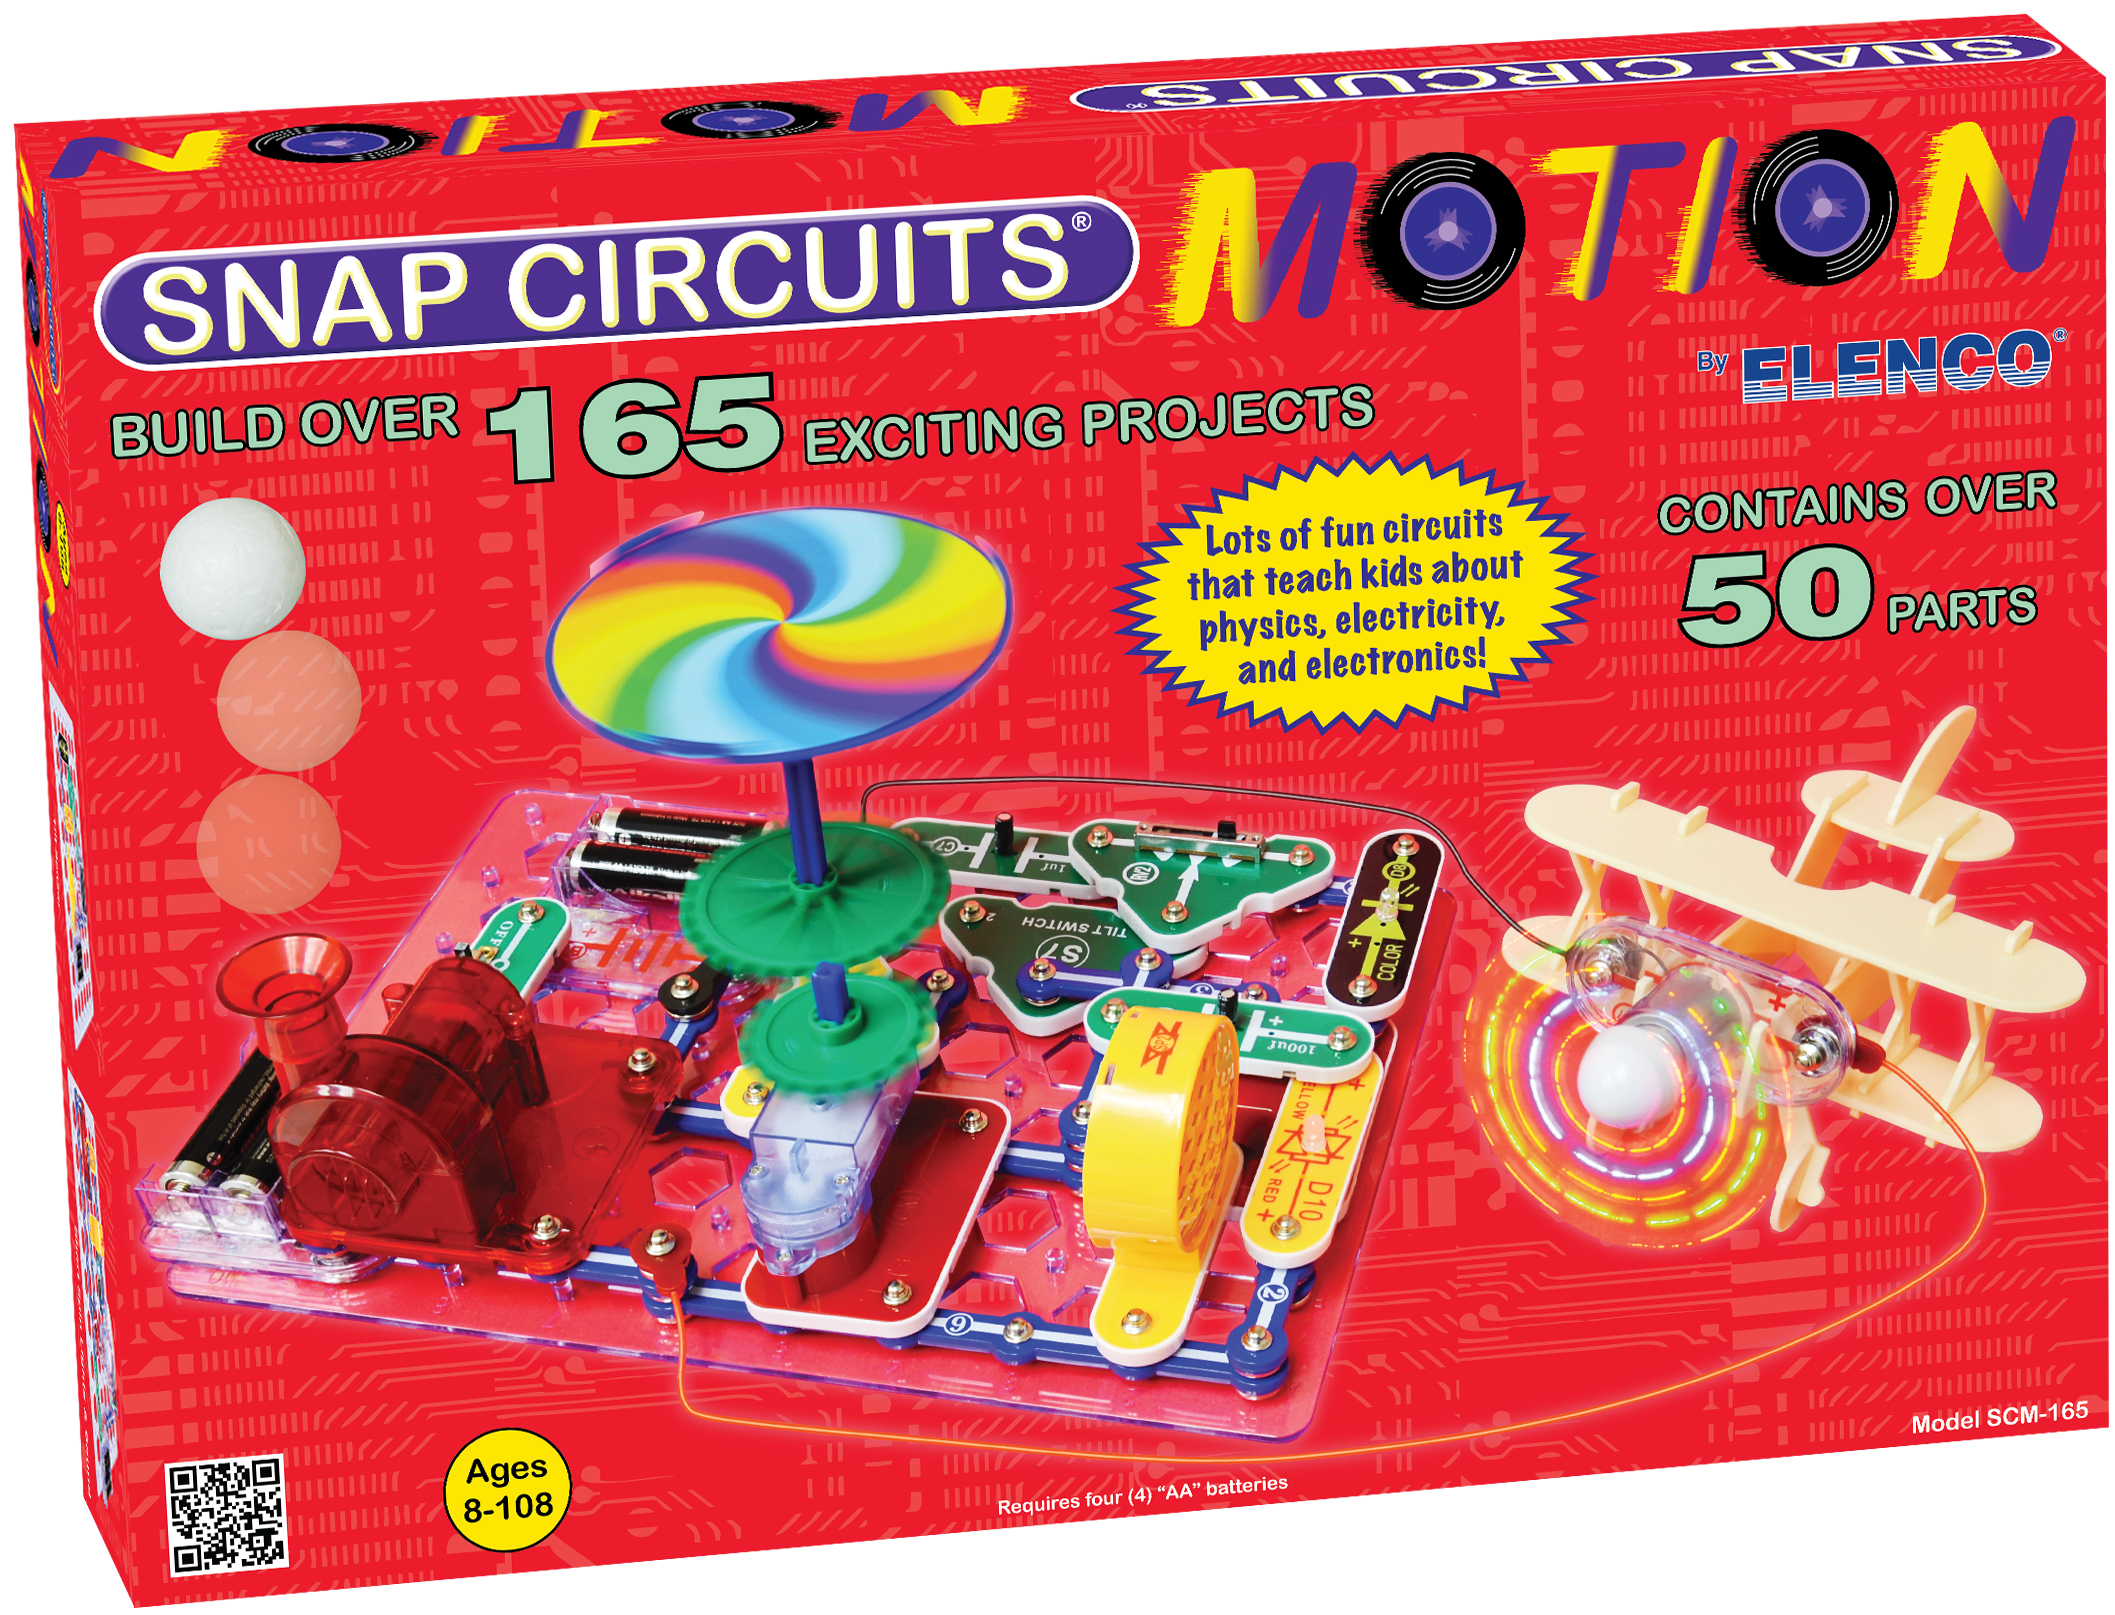 Stem Toys Games How To Make Fun Electric Circuits From Kids Inspiring Engineers